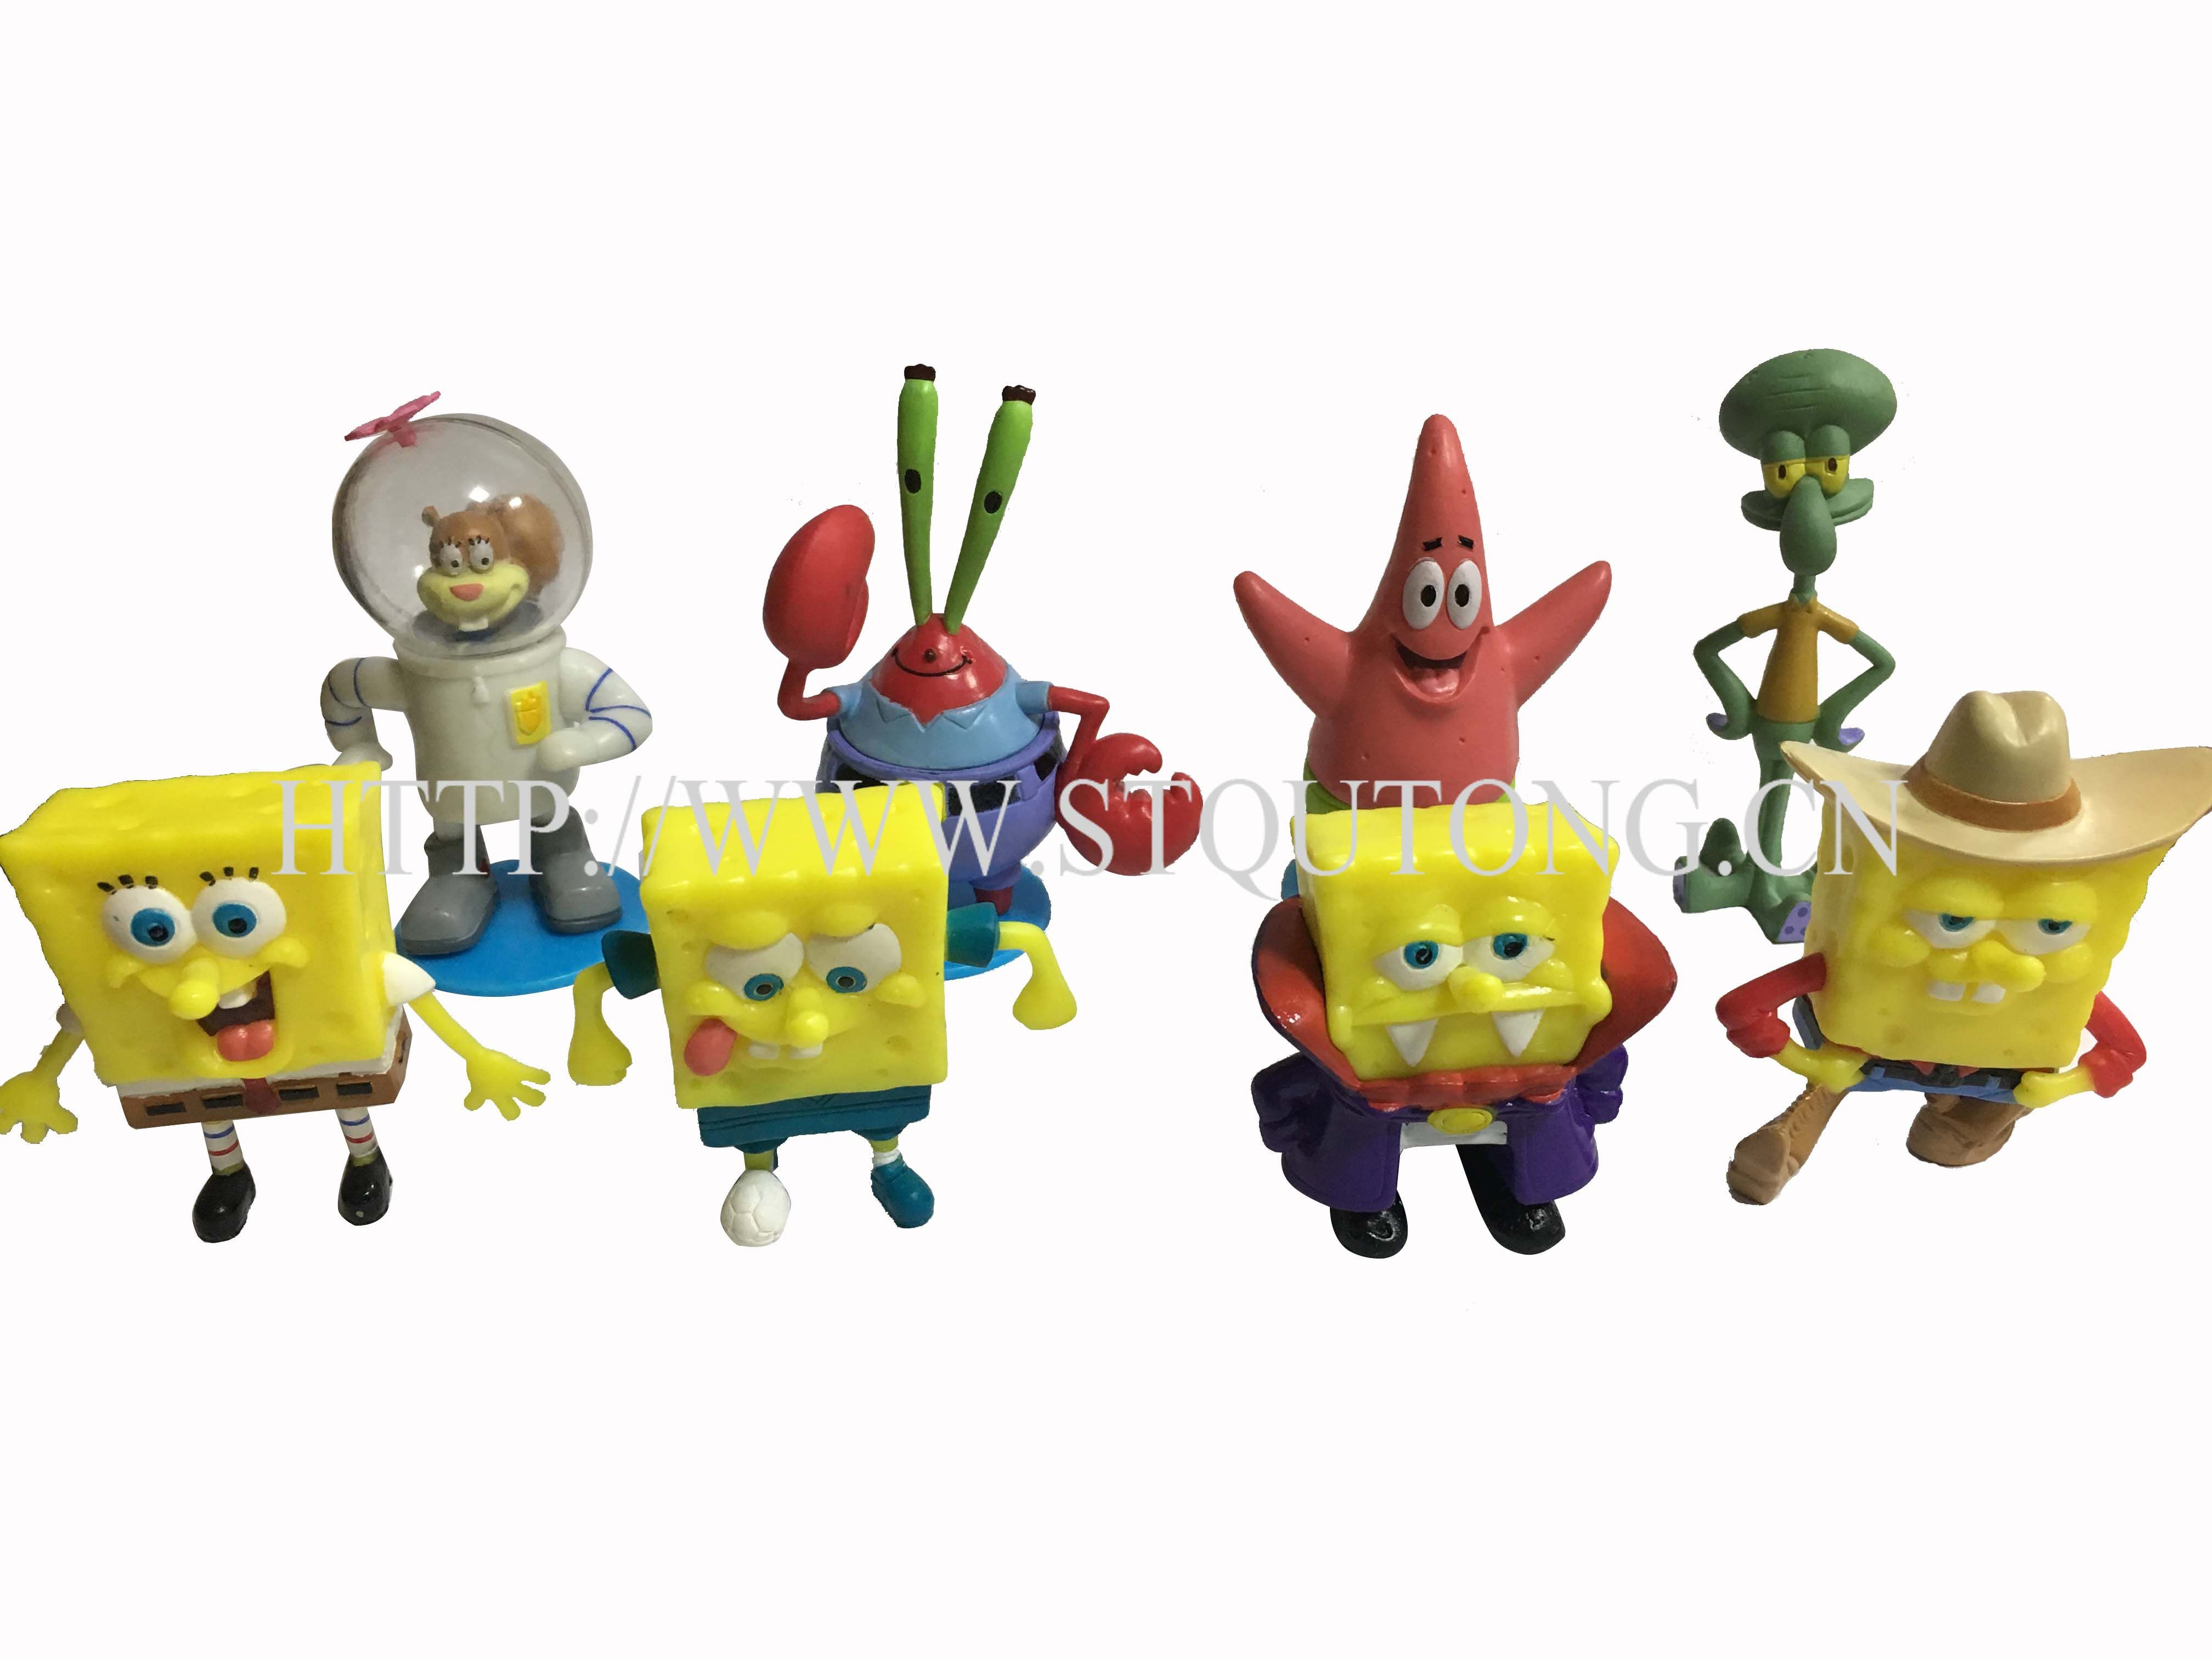 Good quality spongebob vinyl figurine toys for chocolate surprise egg